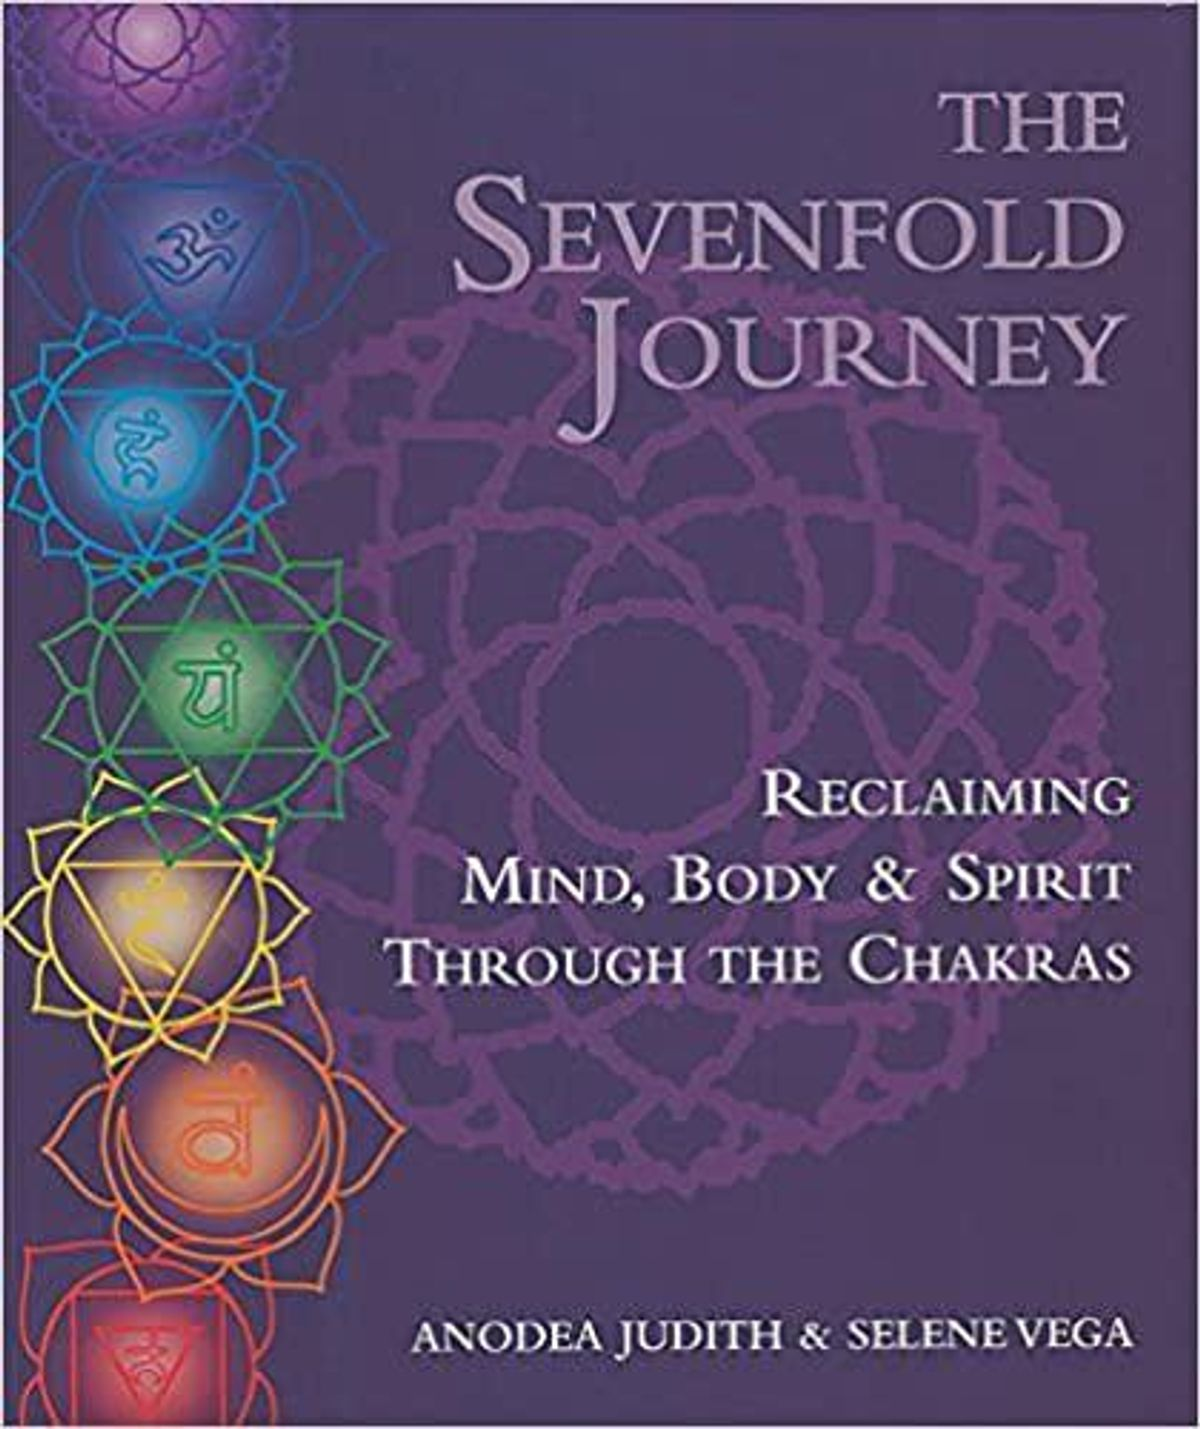 anodea judith the sevenfold journey reclaiming mind body and spirit through the chakras